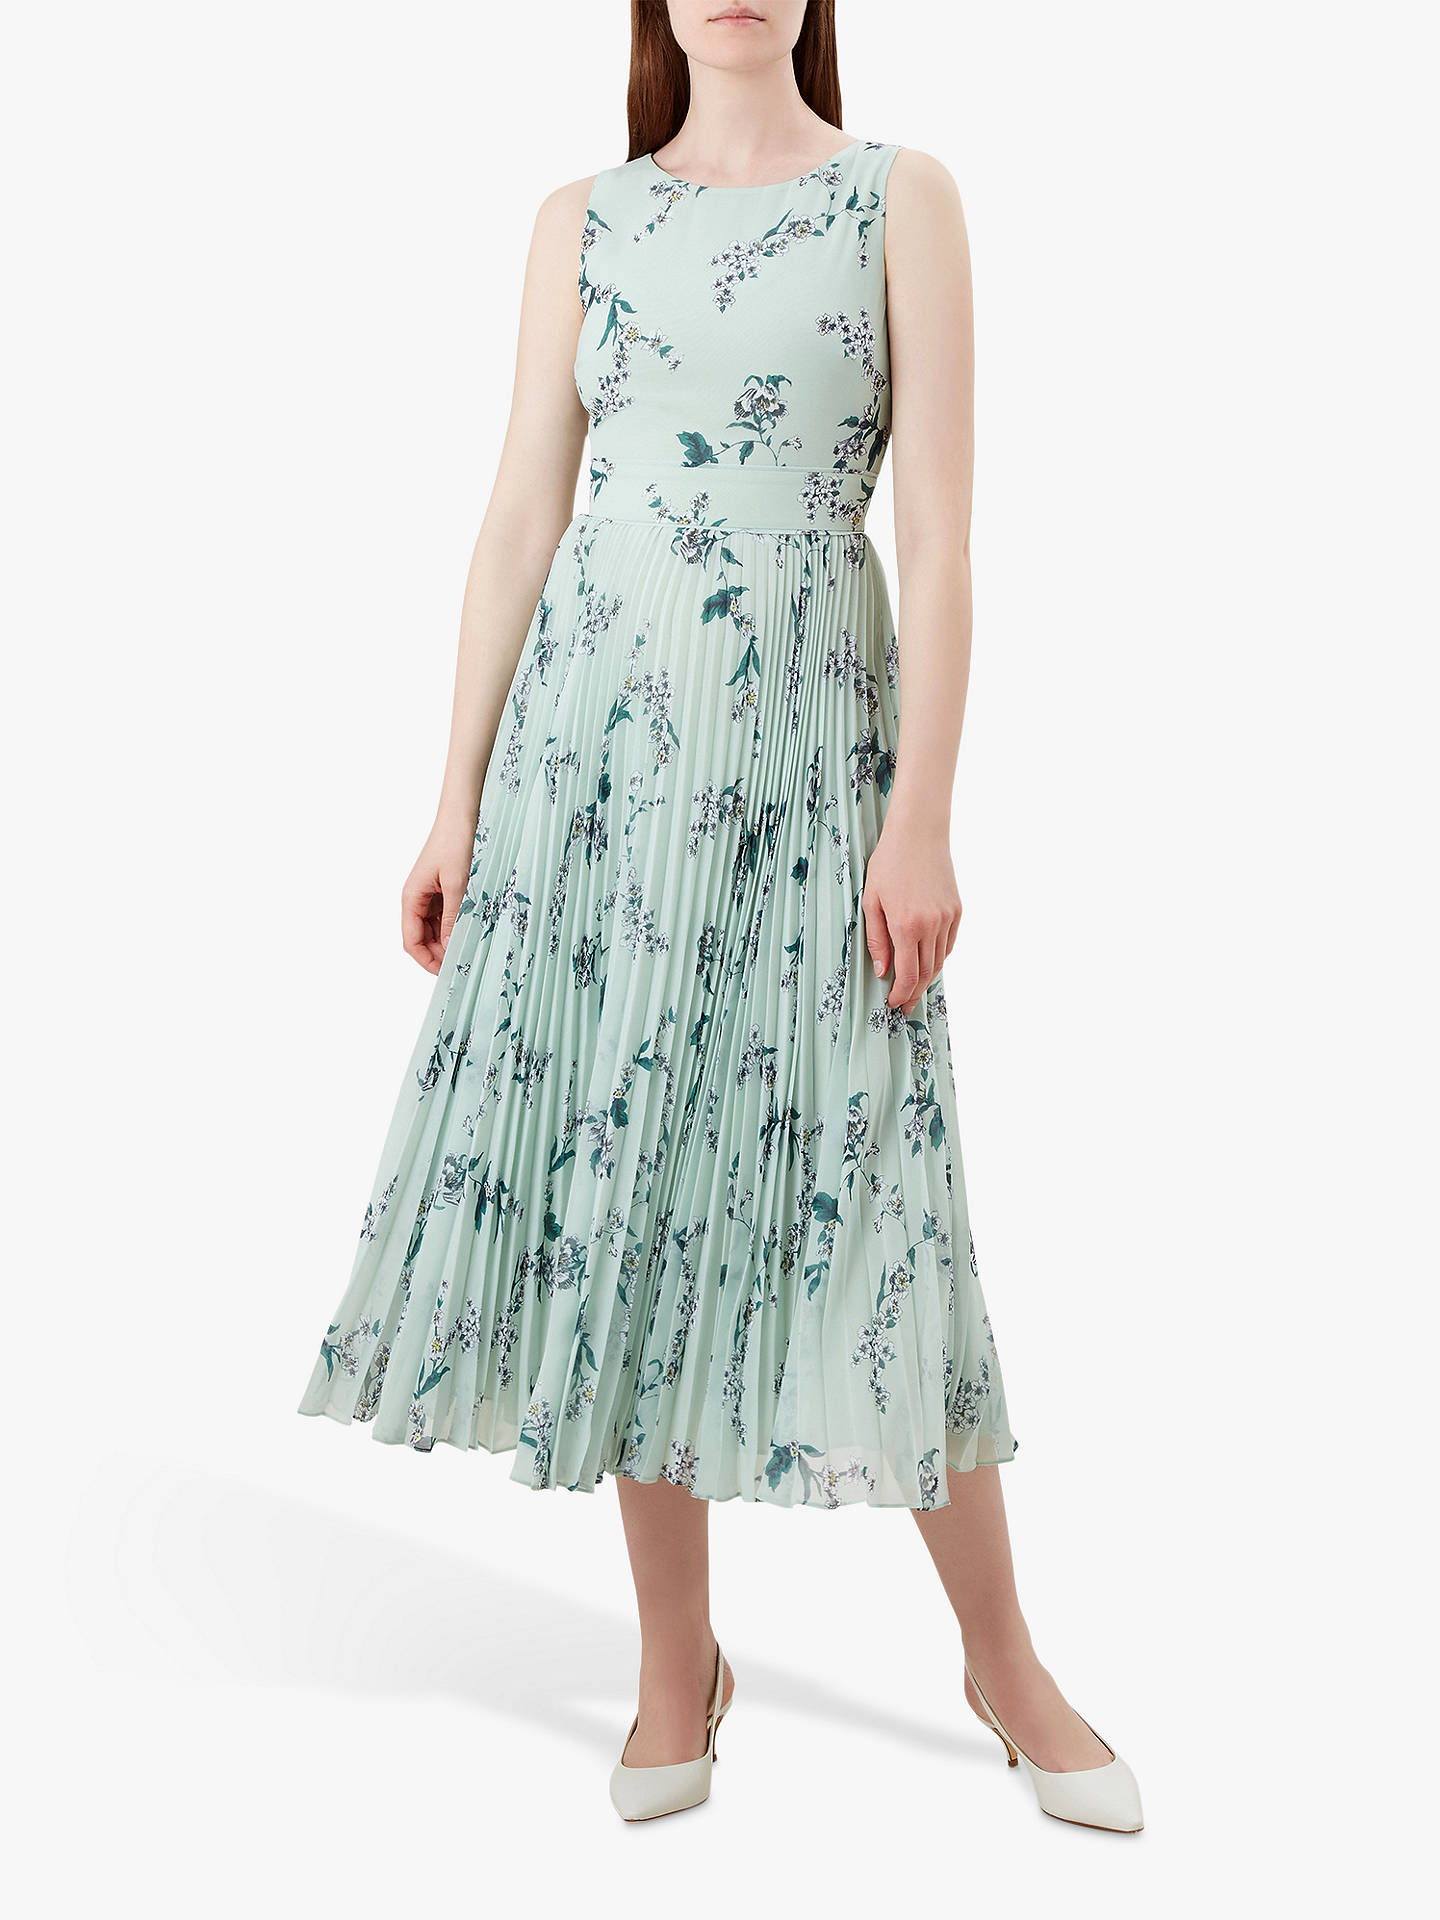 b397dca93c9f2 Buy Hobbs Celeste Dress, Mint, 6 Online at johnlewis.com ...